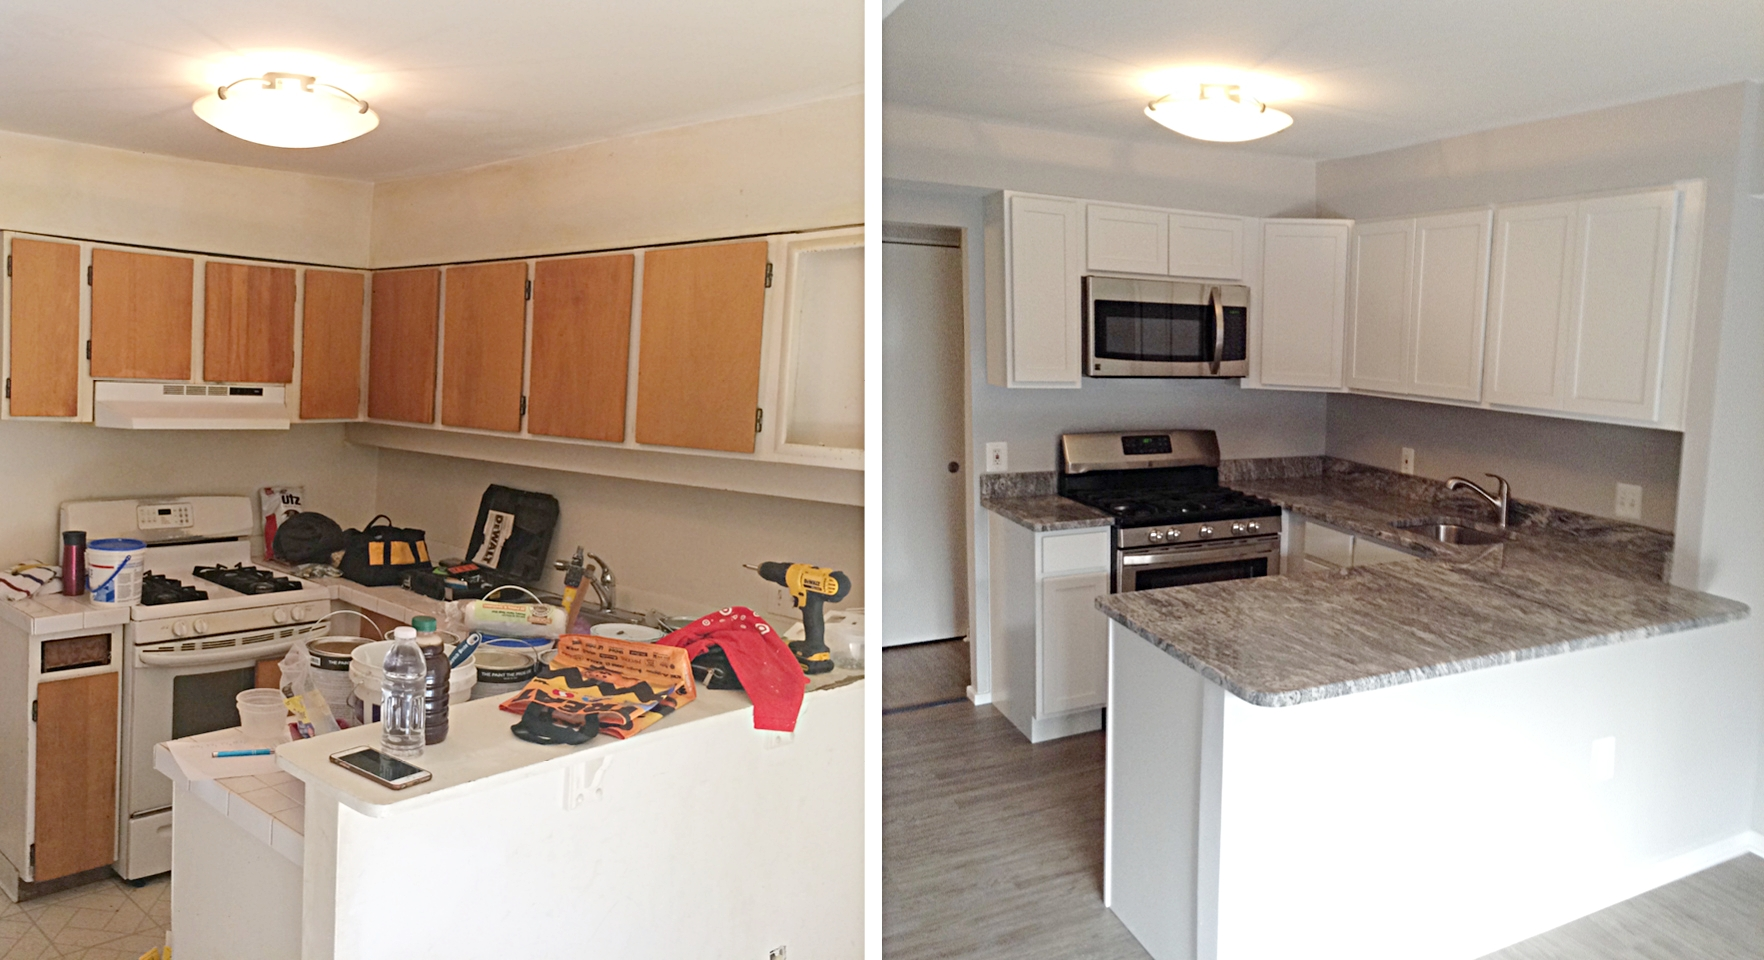 Kitchen: Before & After